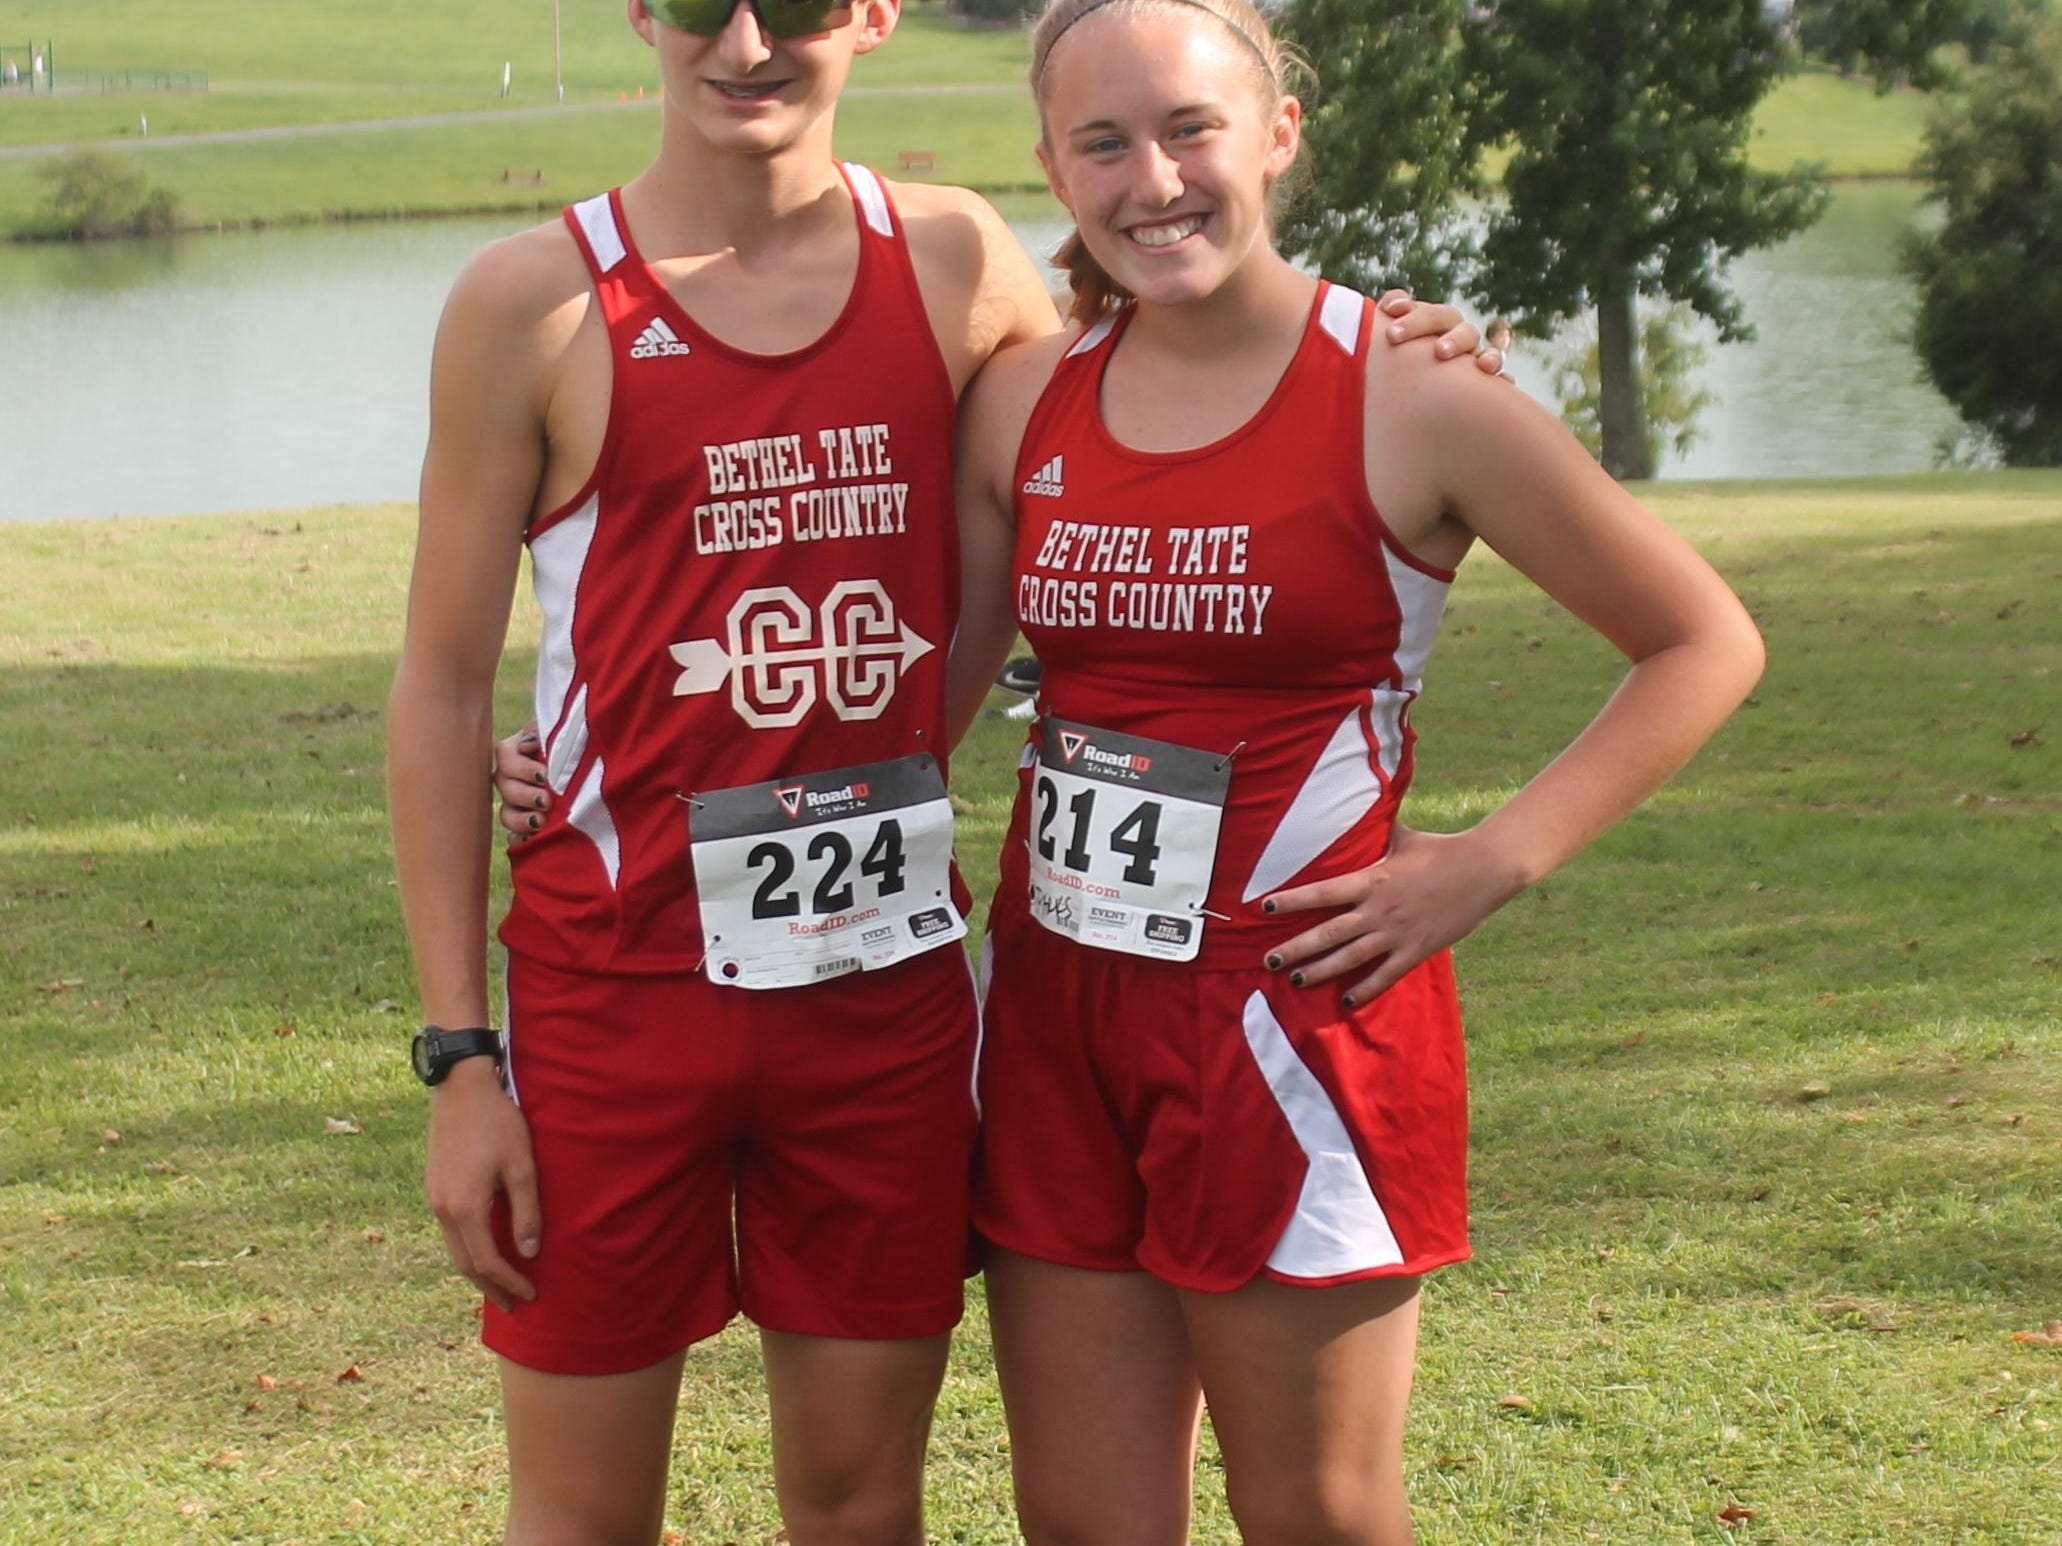 Bethel-Tate sophomores Jackson Coates and Allison Parks are the top runners for the school. Coates won the boys race Aug. 26 at Washington Township Park.